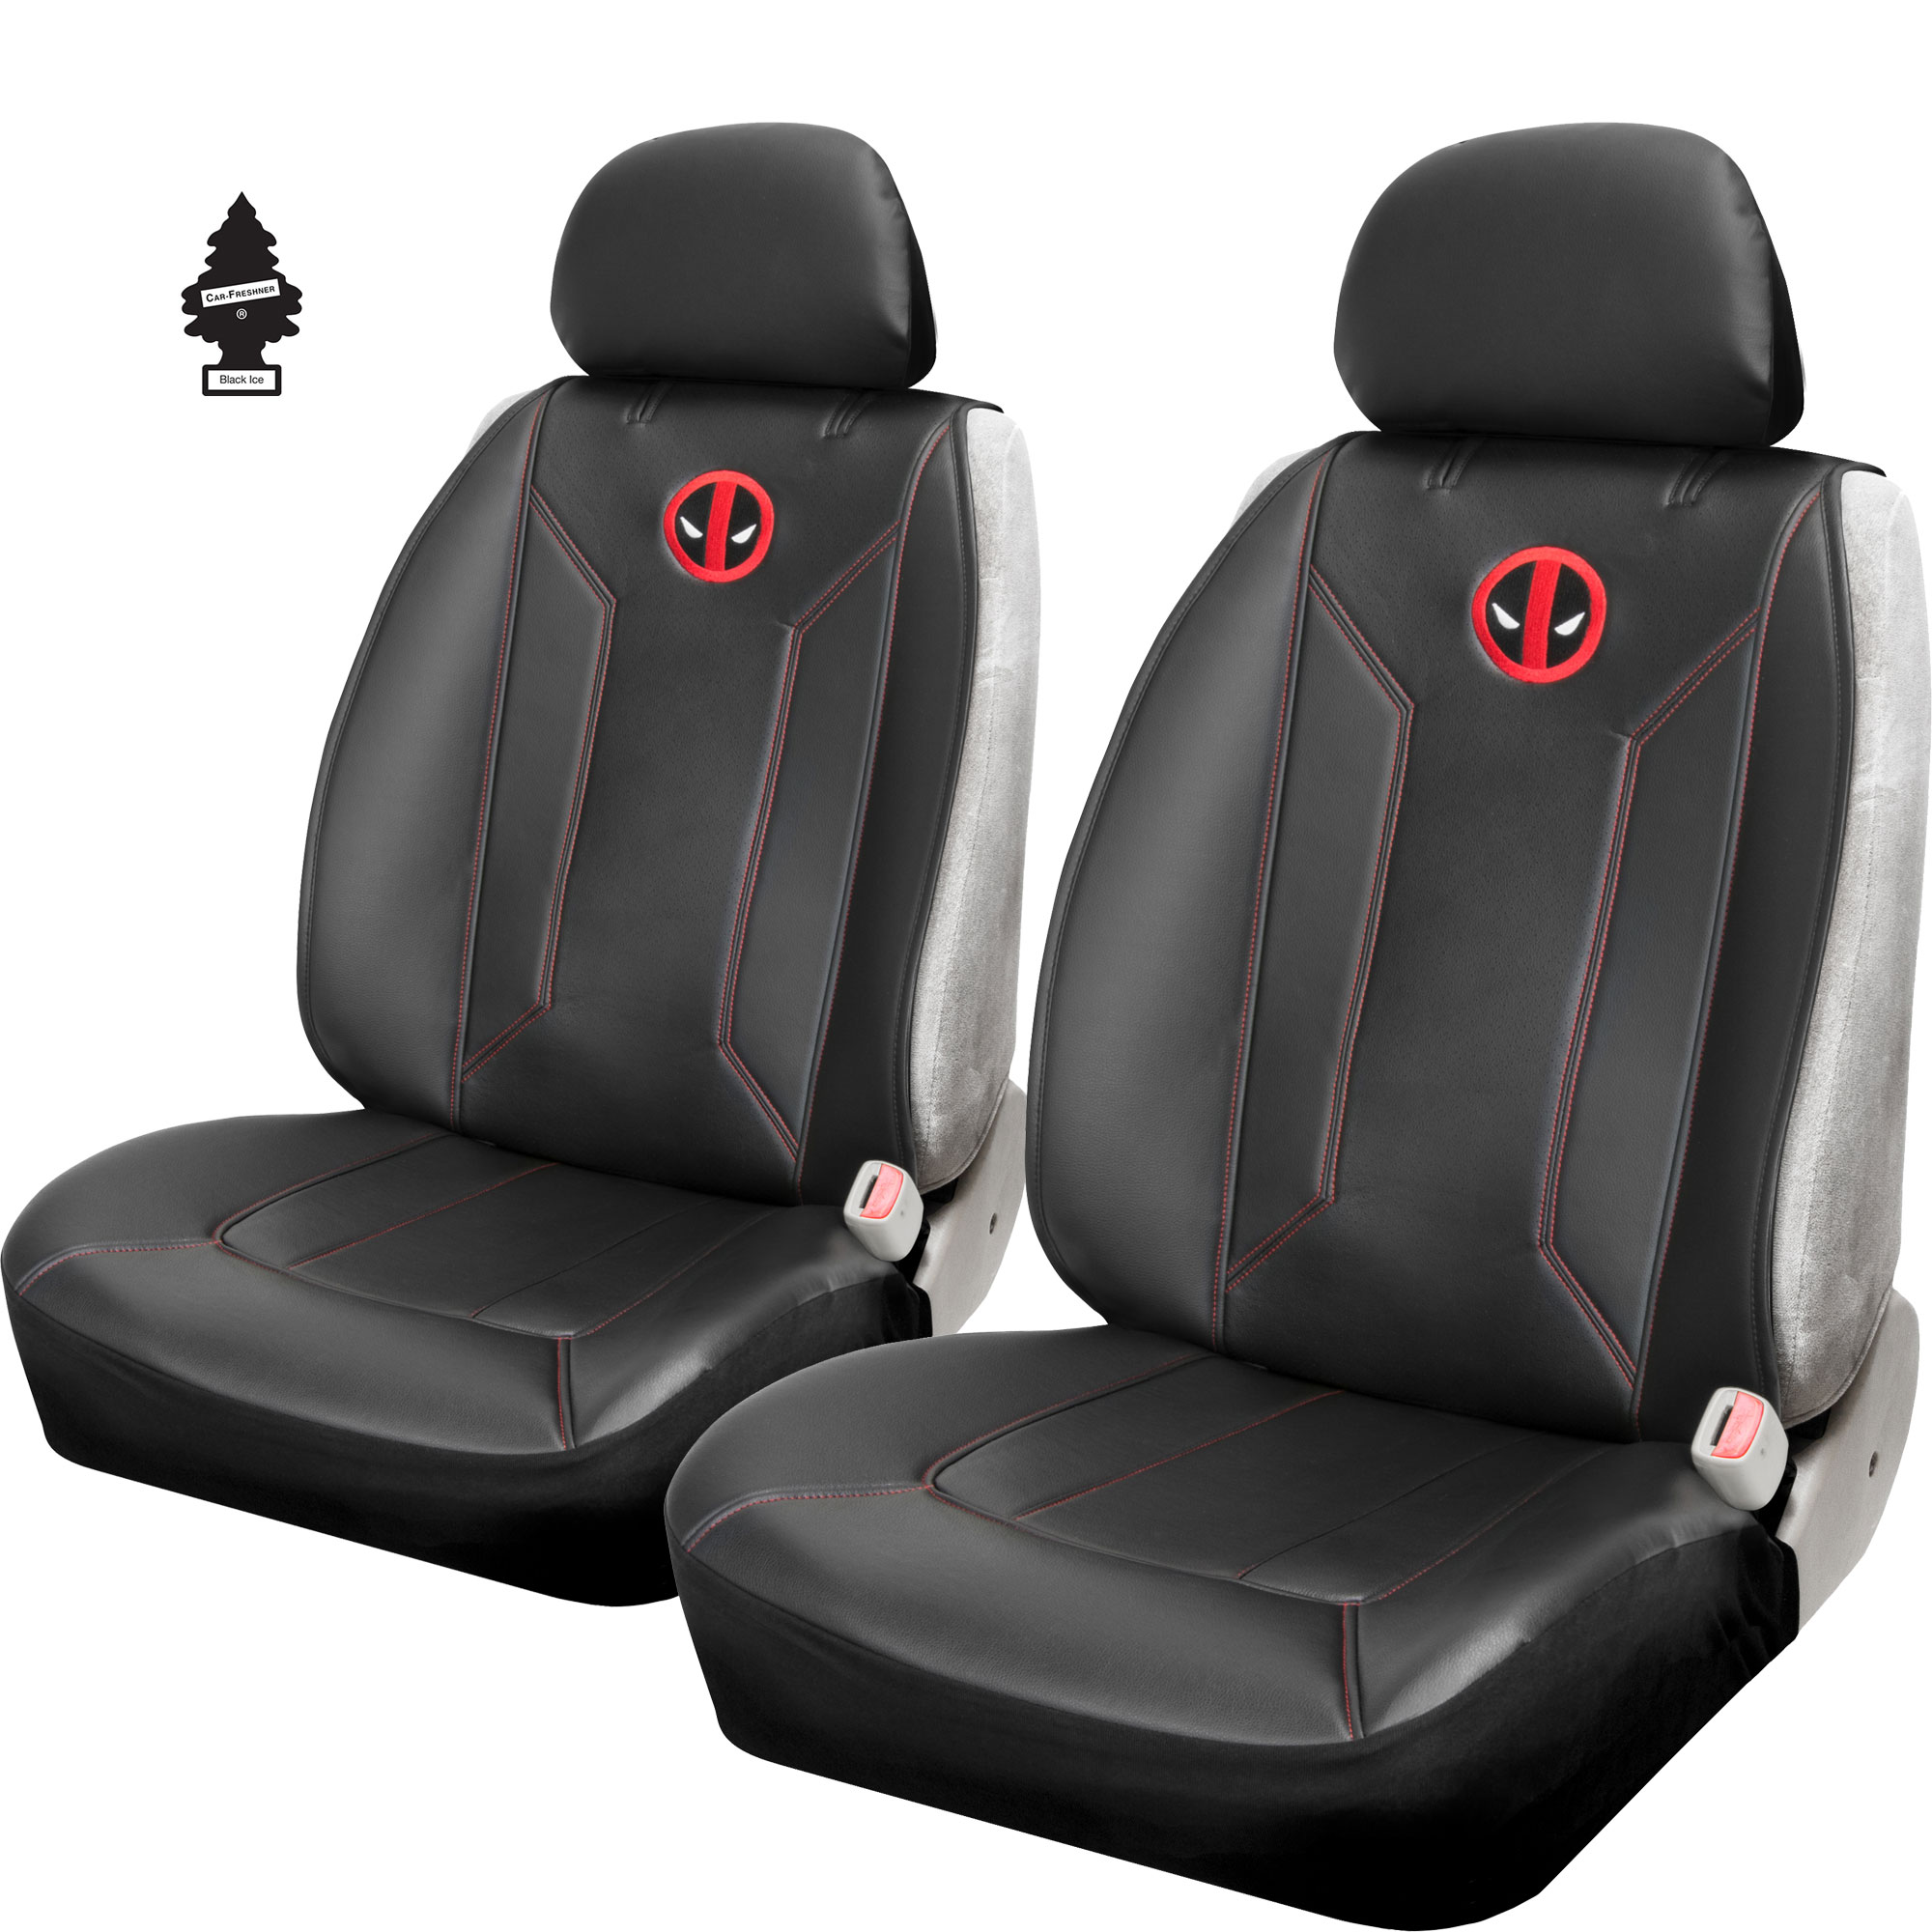 New Pair of Marvel Deadpool Logo Universal Sideless Car Truck SUV Seat Cover and Air Freshener